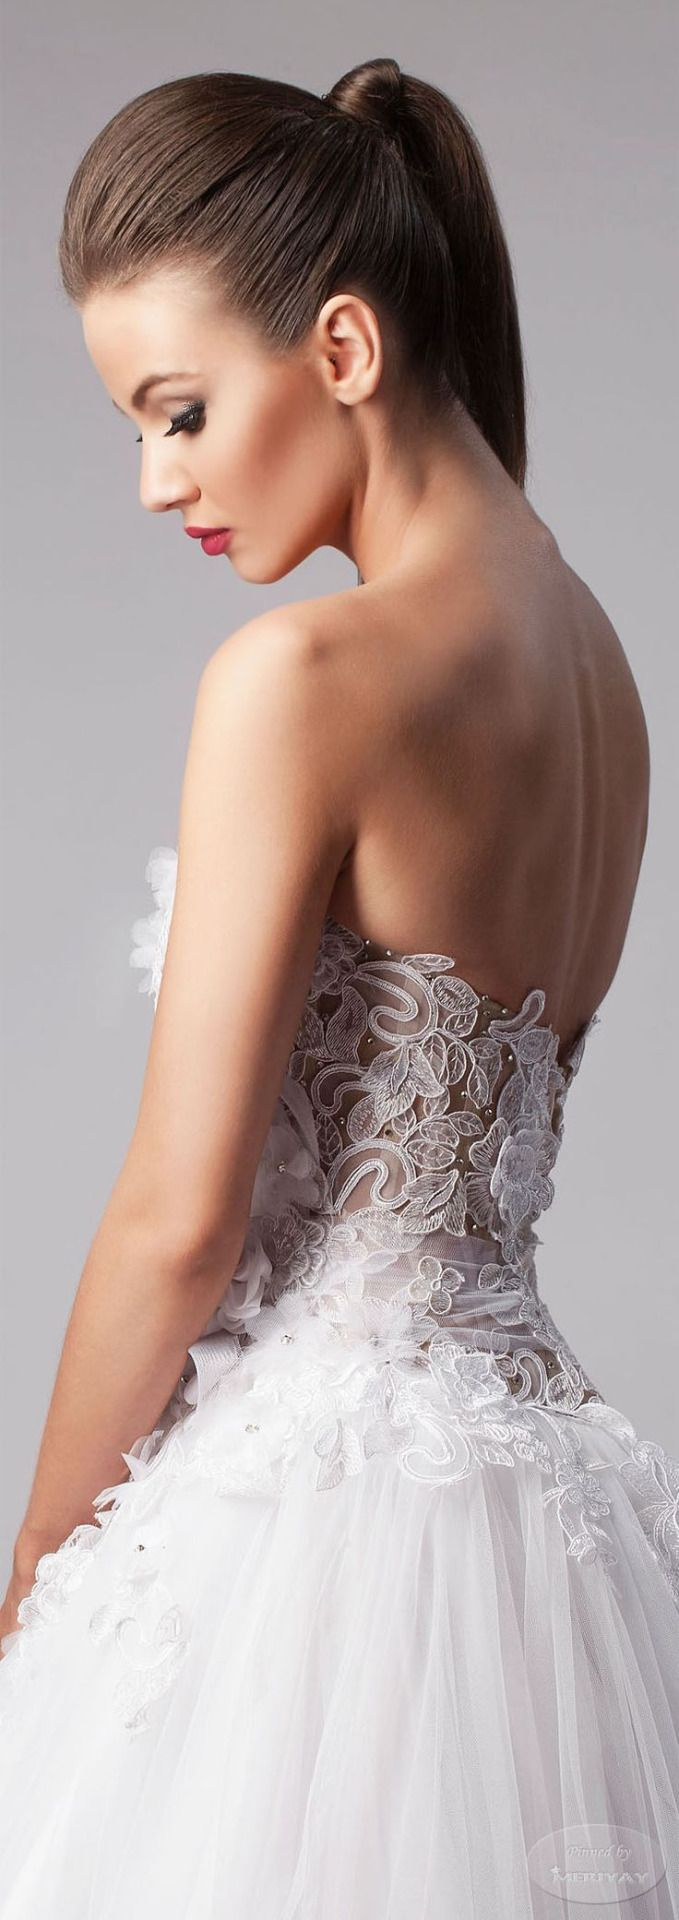 Elite wedding dresses   best The Princess  Parlor images on Pinterest  Bridal